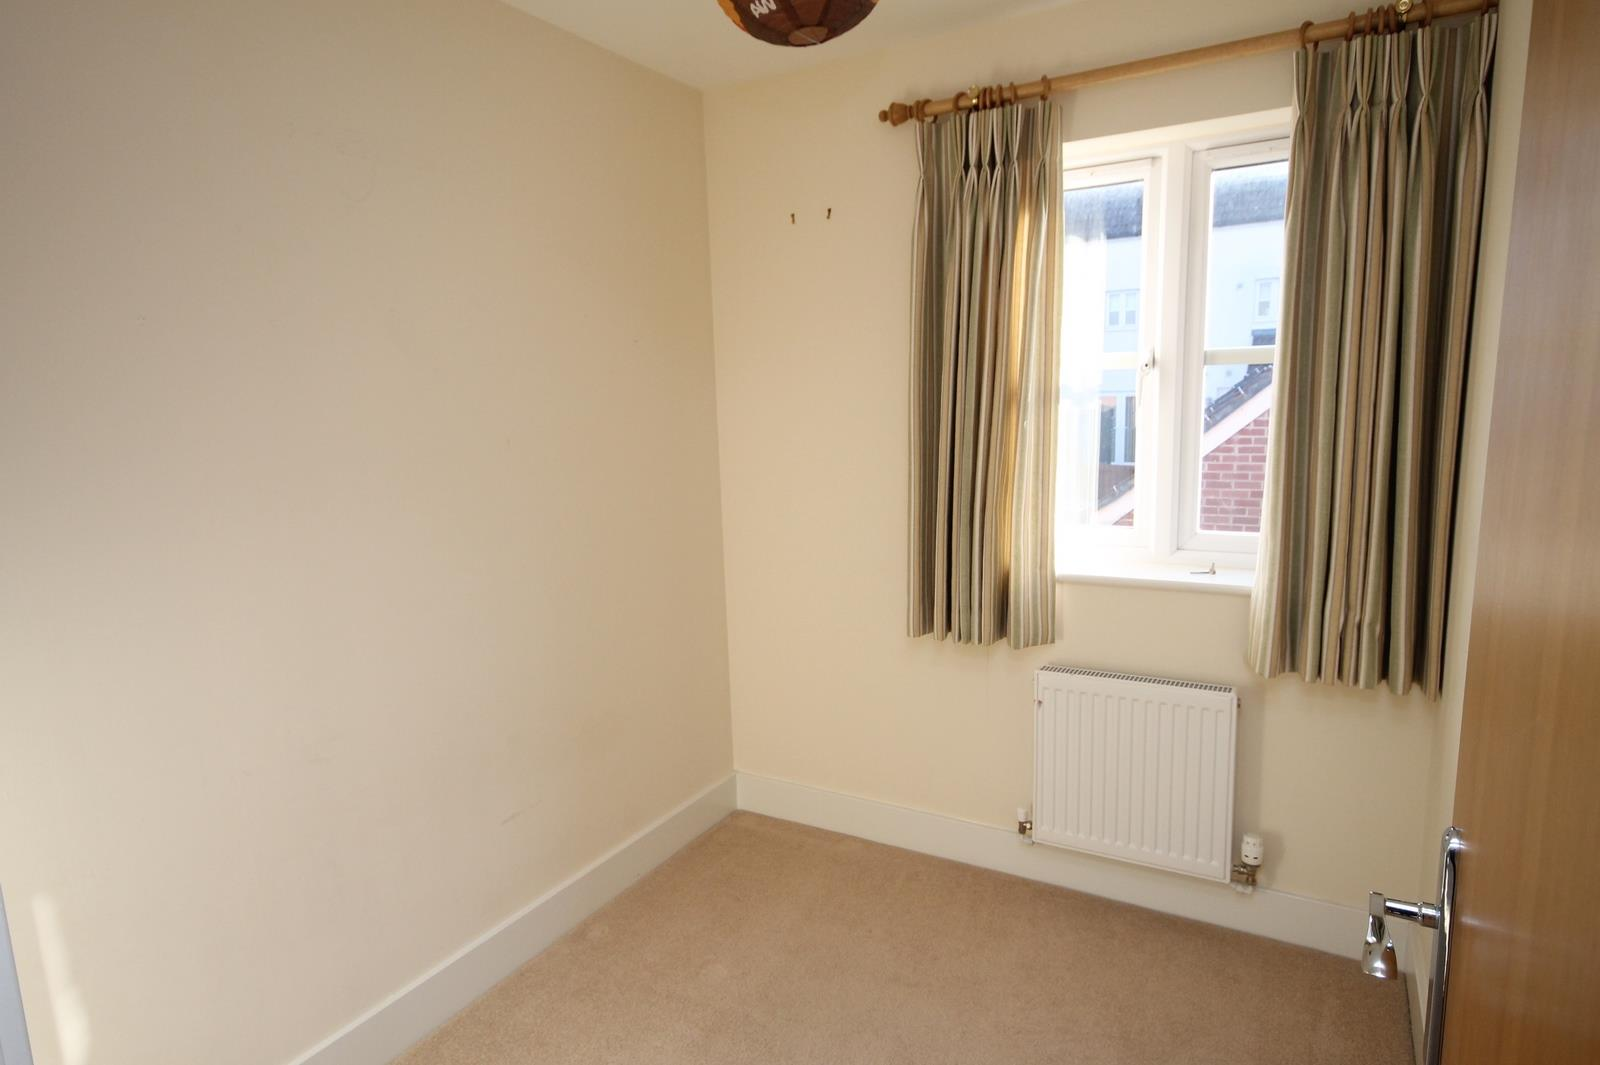 4 bed house to rent in Blackcurrant Drive, Bristol  - Property Image 6